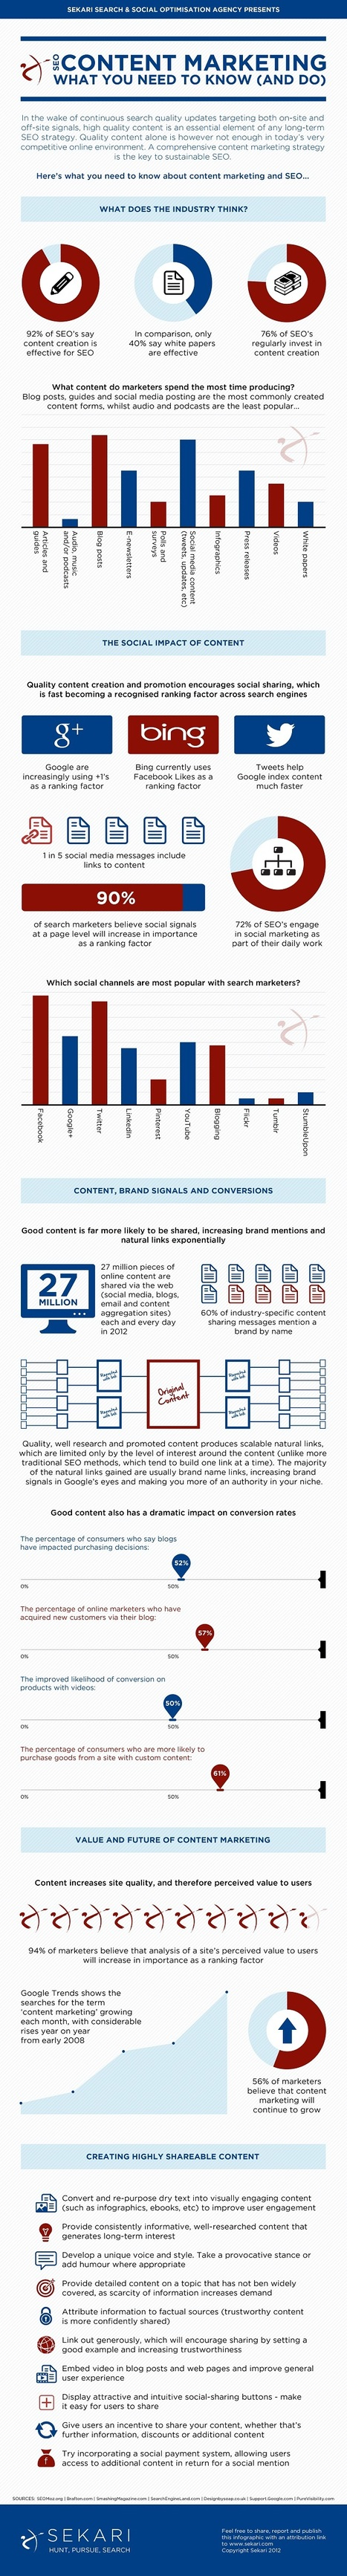 The Importance of Content Marketing When Building SEO Strategies [Infographic] | Digital SMBs | Scoop.it